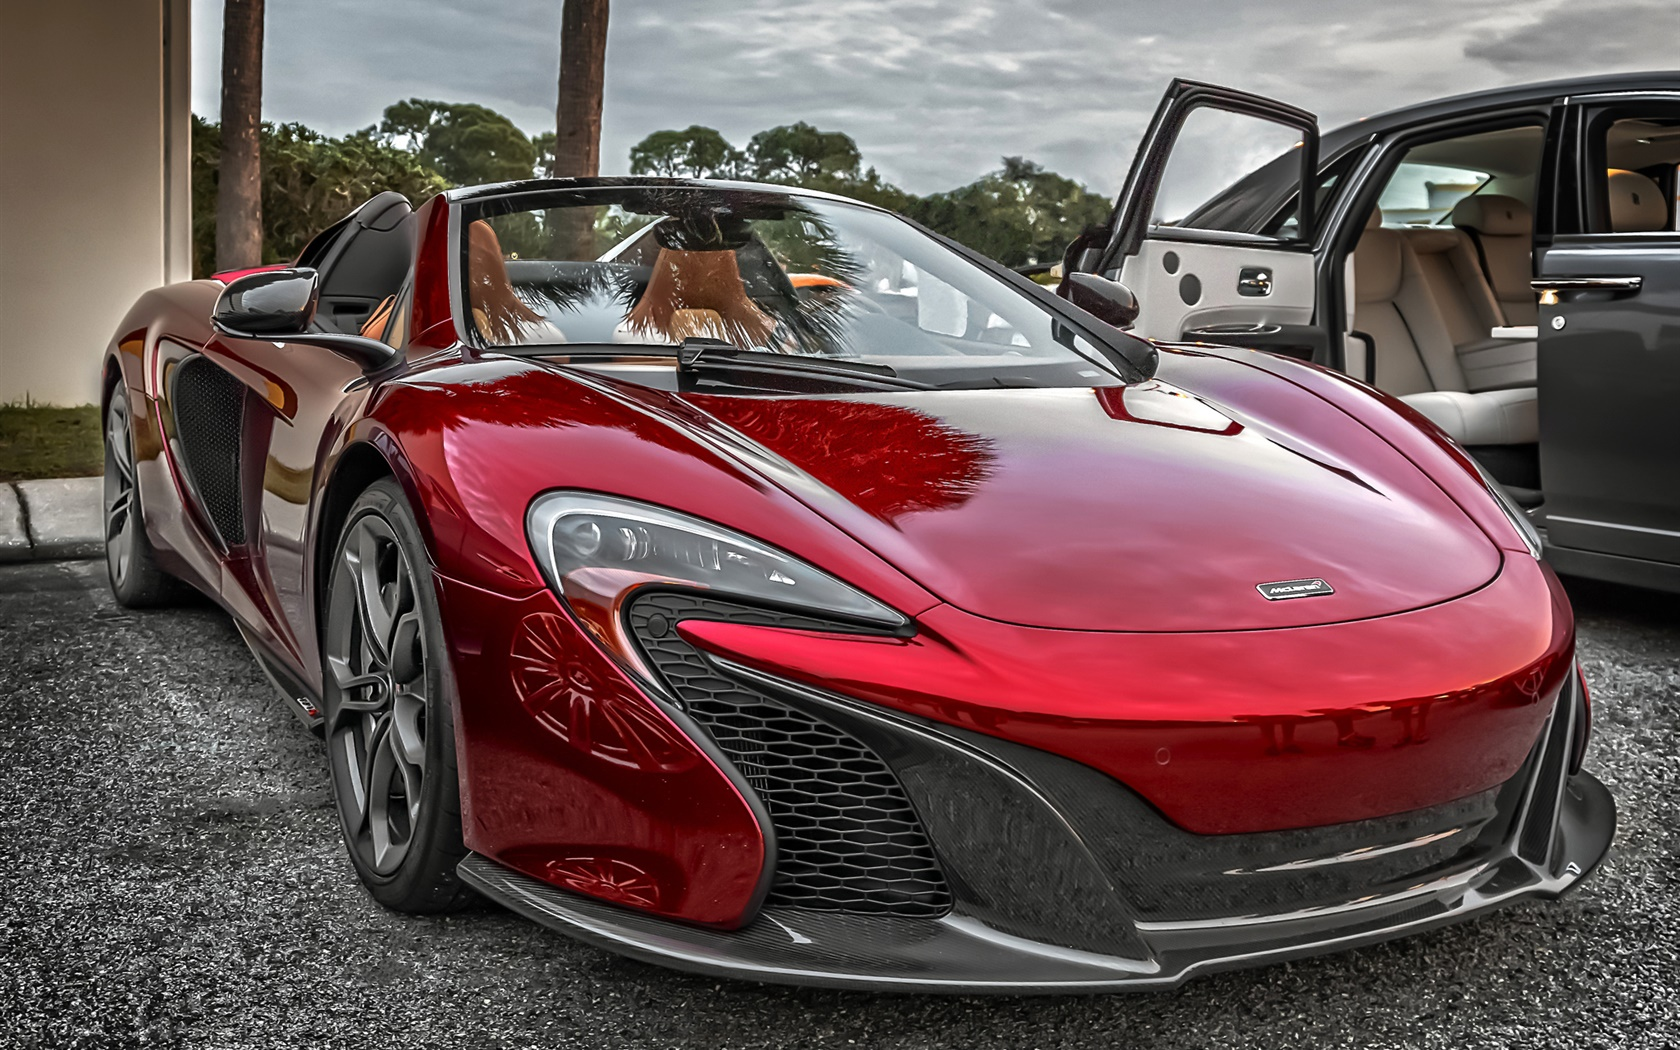 McLaren P1 red supercar front view 1680x1050 wallpaper